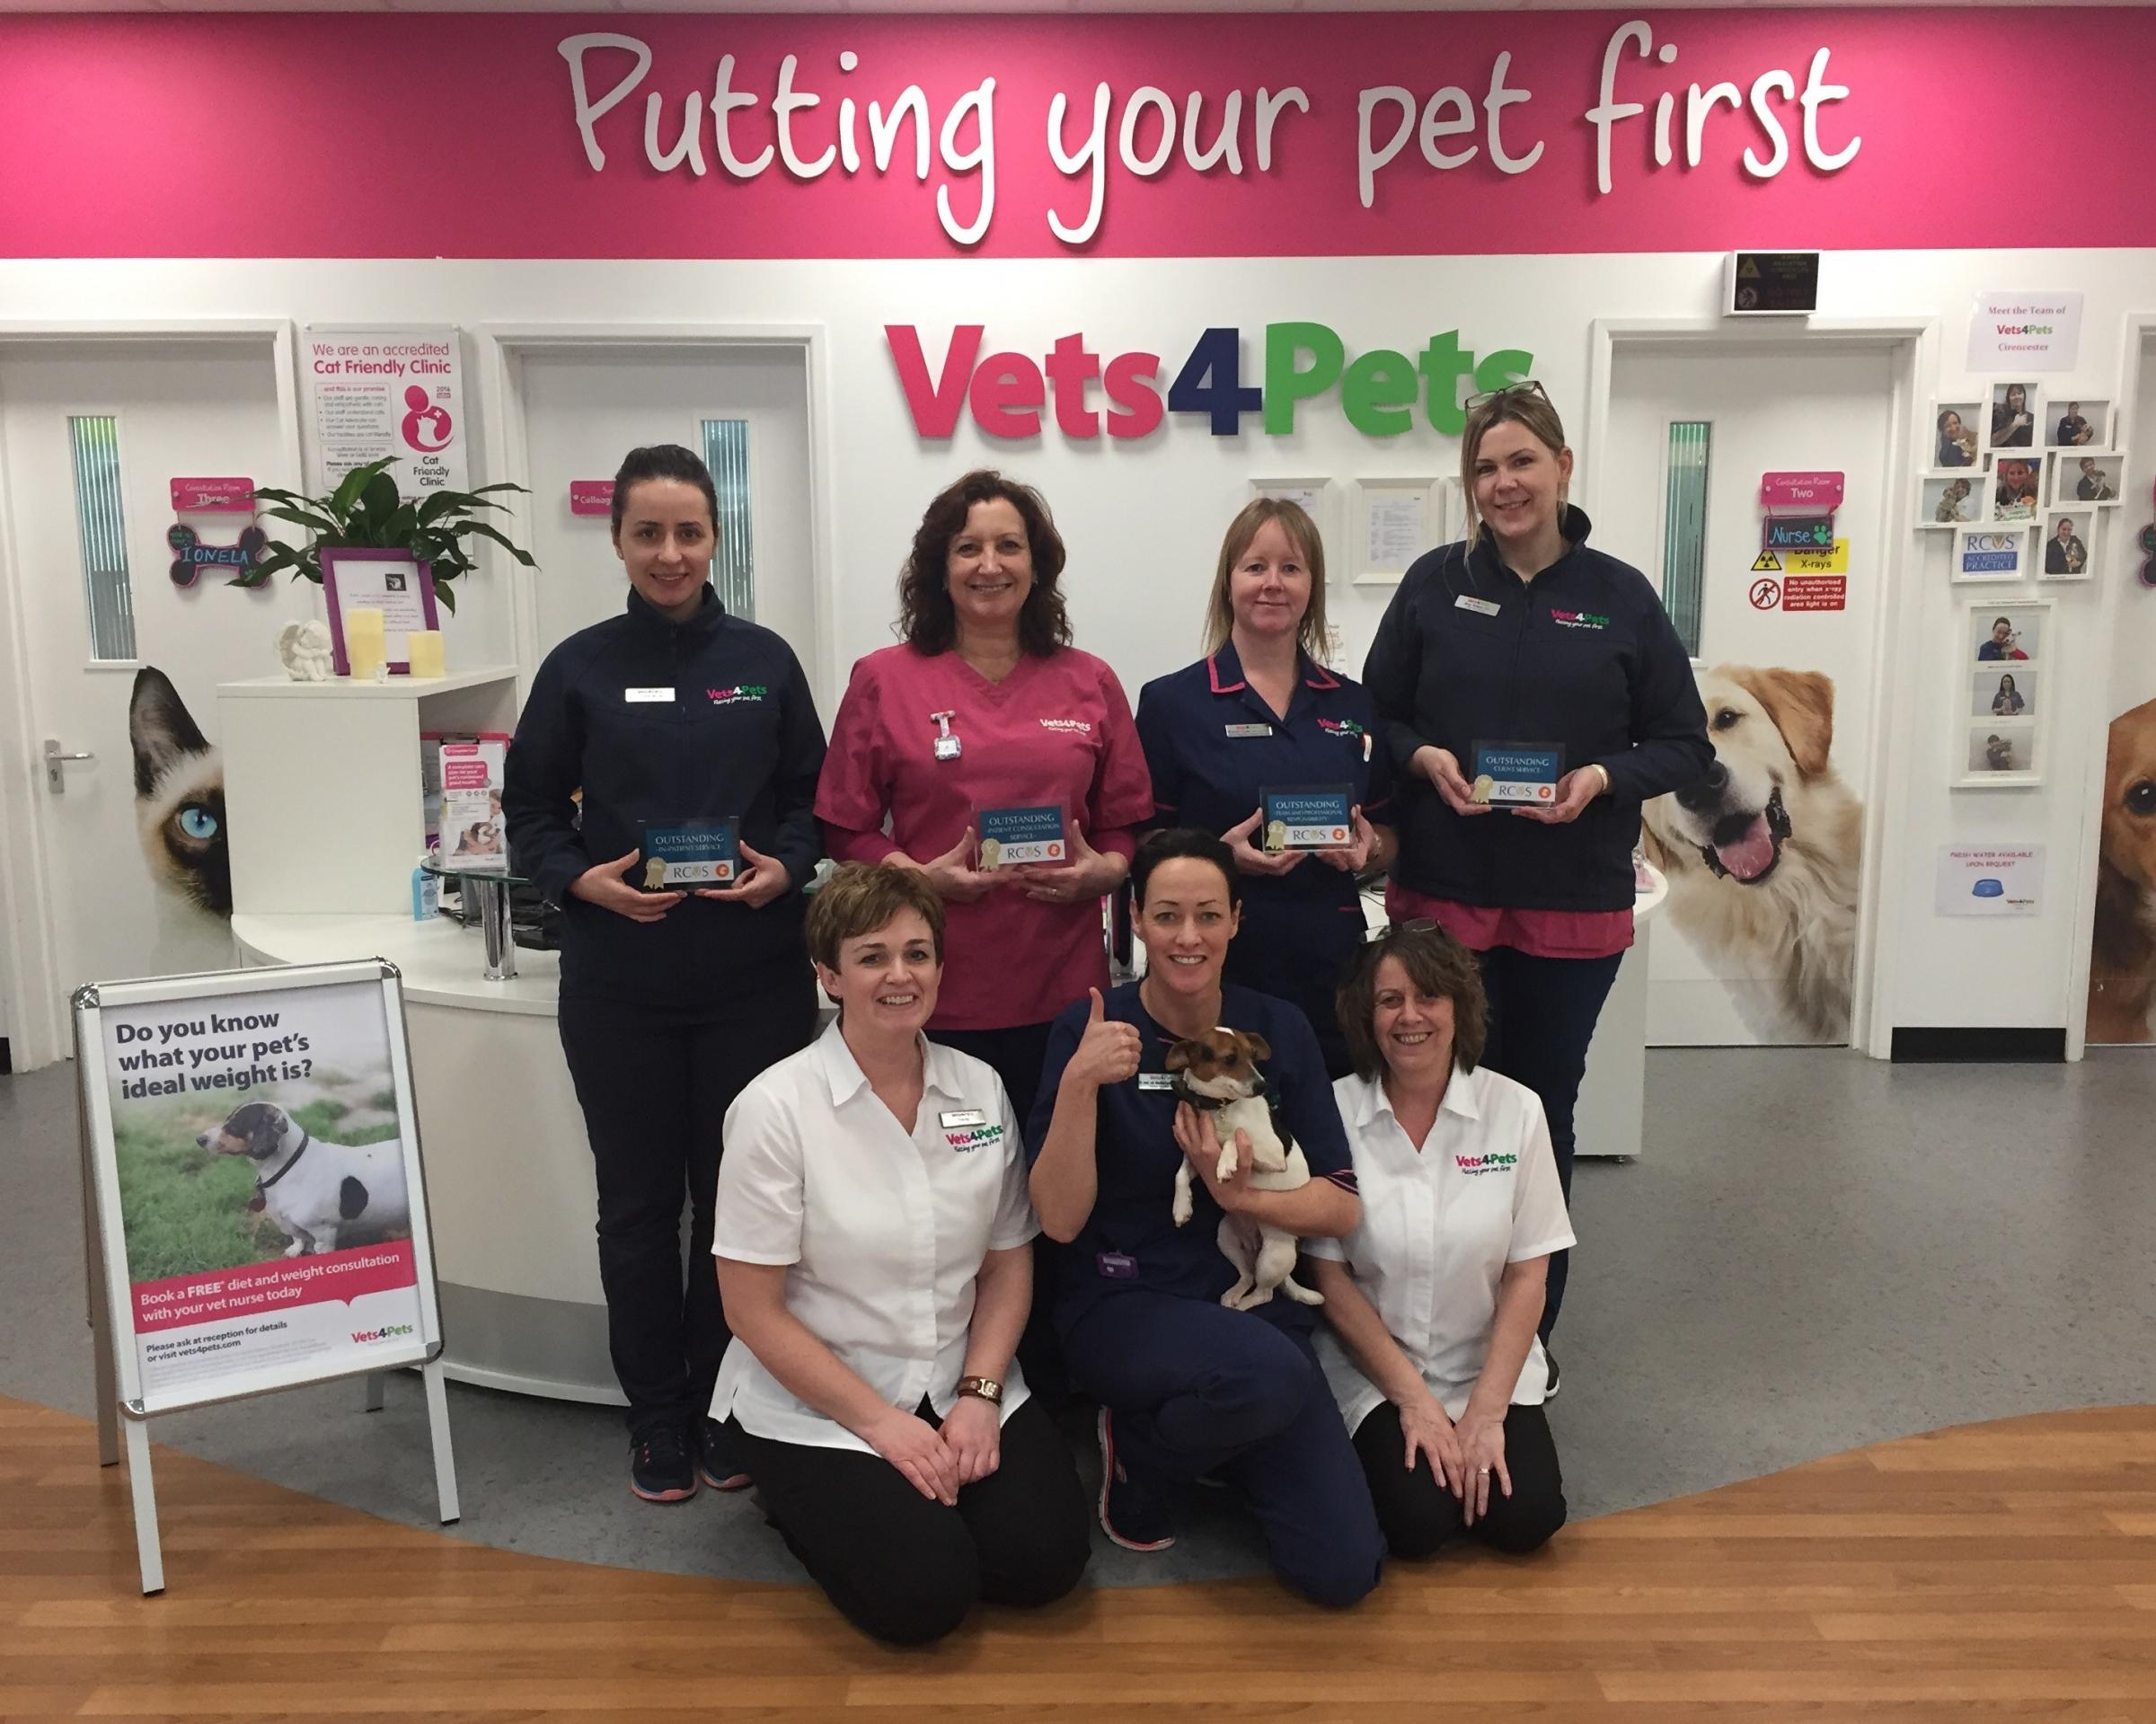 The team at Vets4Pets